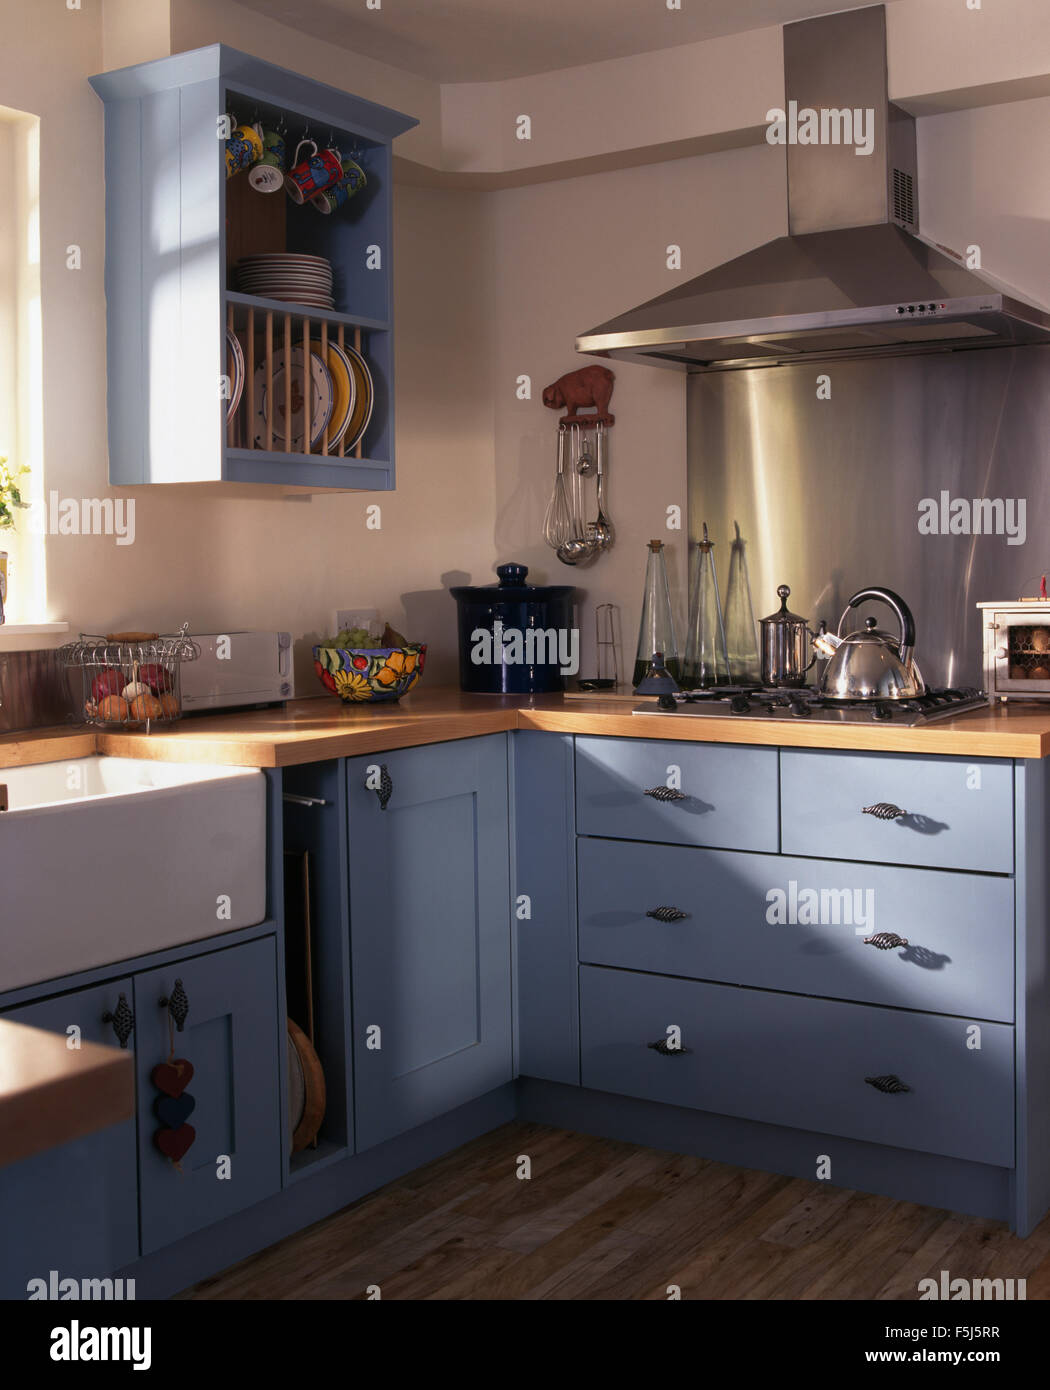 Stainless Steel Extractor And Splash Back Above The Hob In A Kitchen With  Pale Blue Fitted Units